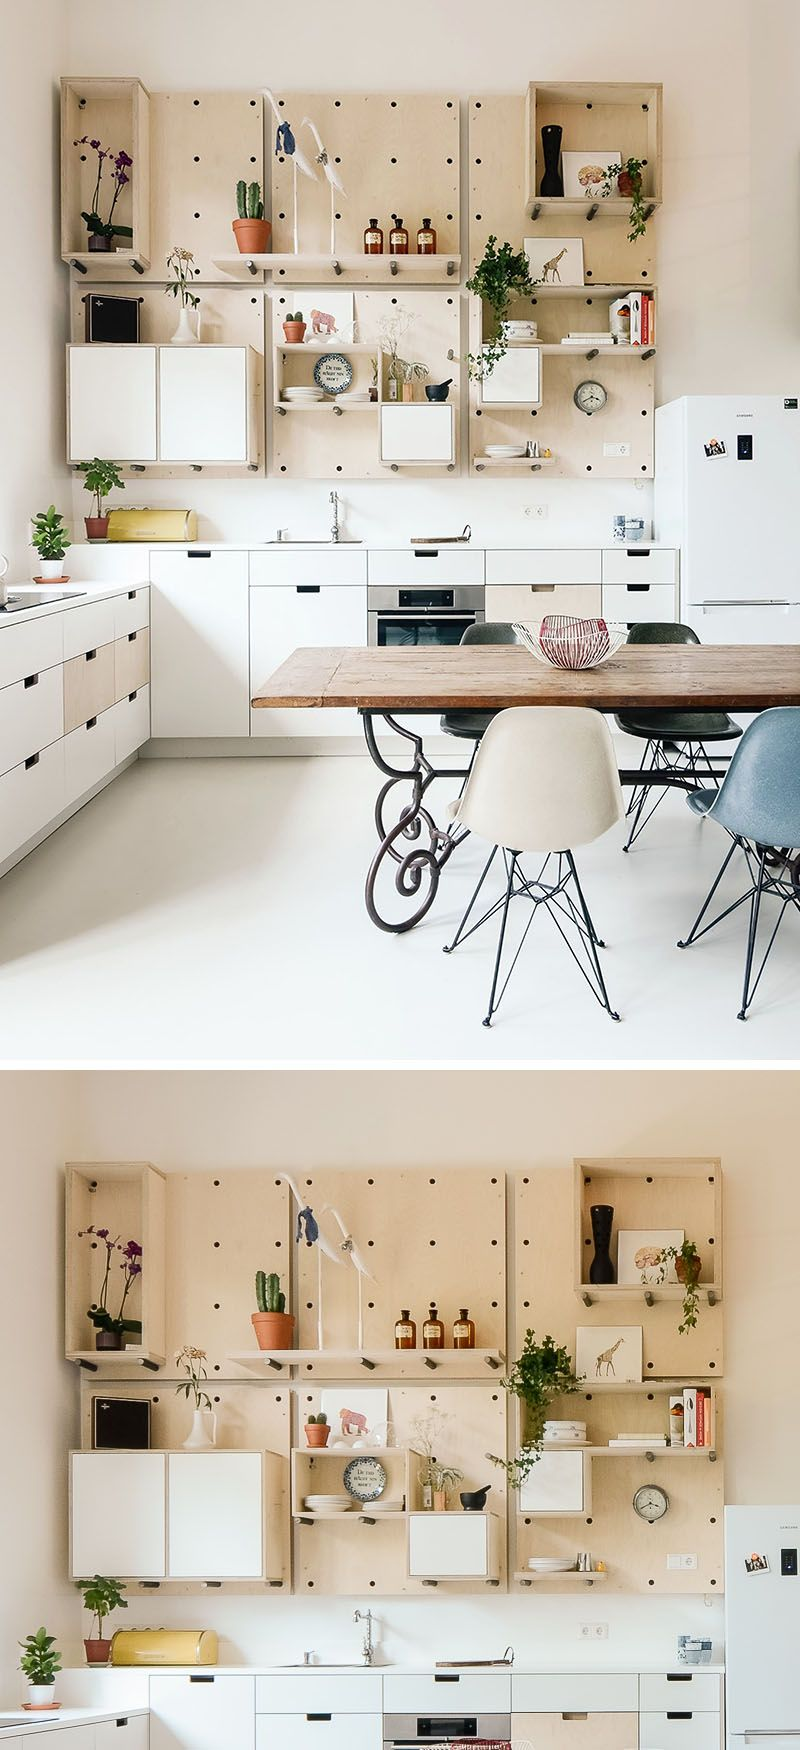 prodigious Using Pegboard In Kitchen Part - 20: 9 Ideas For Using Pegboard And Dowels To Create Open Shelving -- The  pegboard shelving makes it possible to have shelves and boxes in this  kitchen, ...